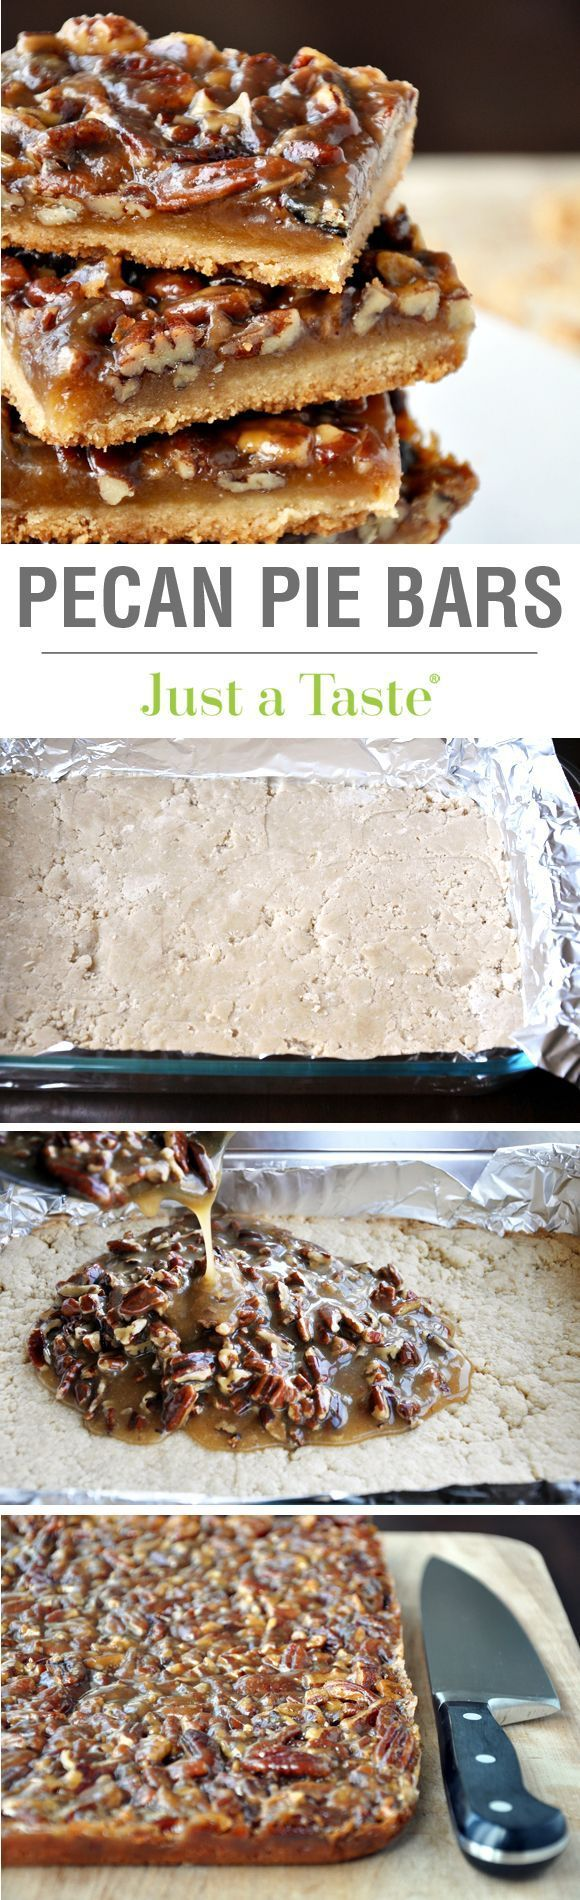 Pecan Pie Bars recipe http://justataste.com | A quick and easy Thanksgiving dessert!